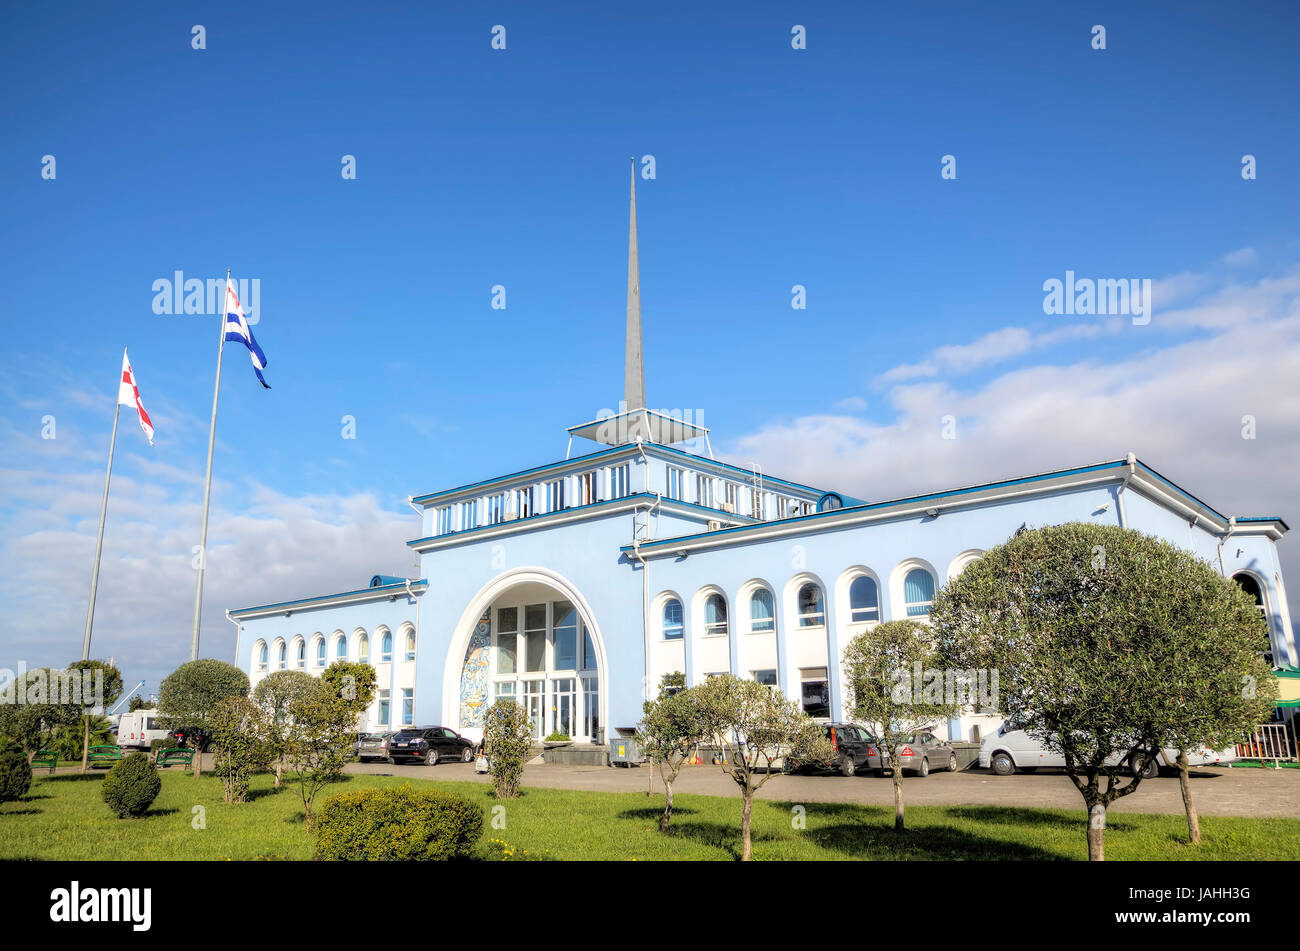 The building of the Sea Passenger Port. Batumi, Georgia - Stock Image